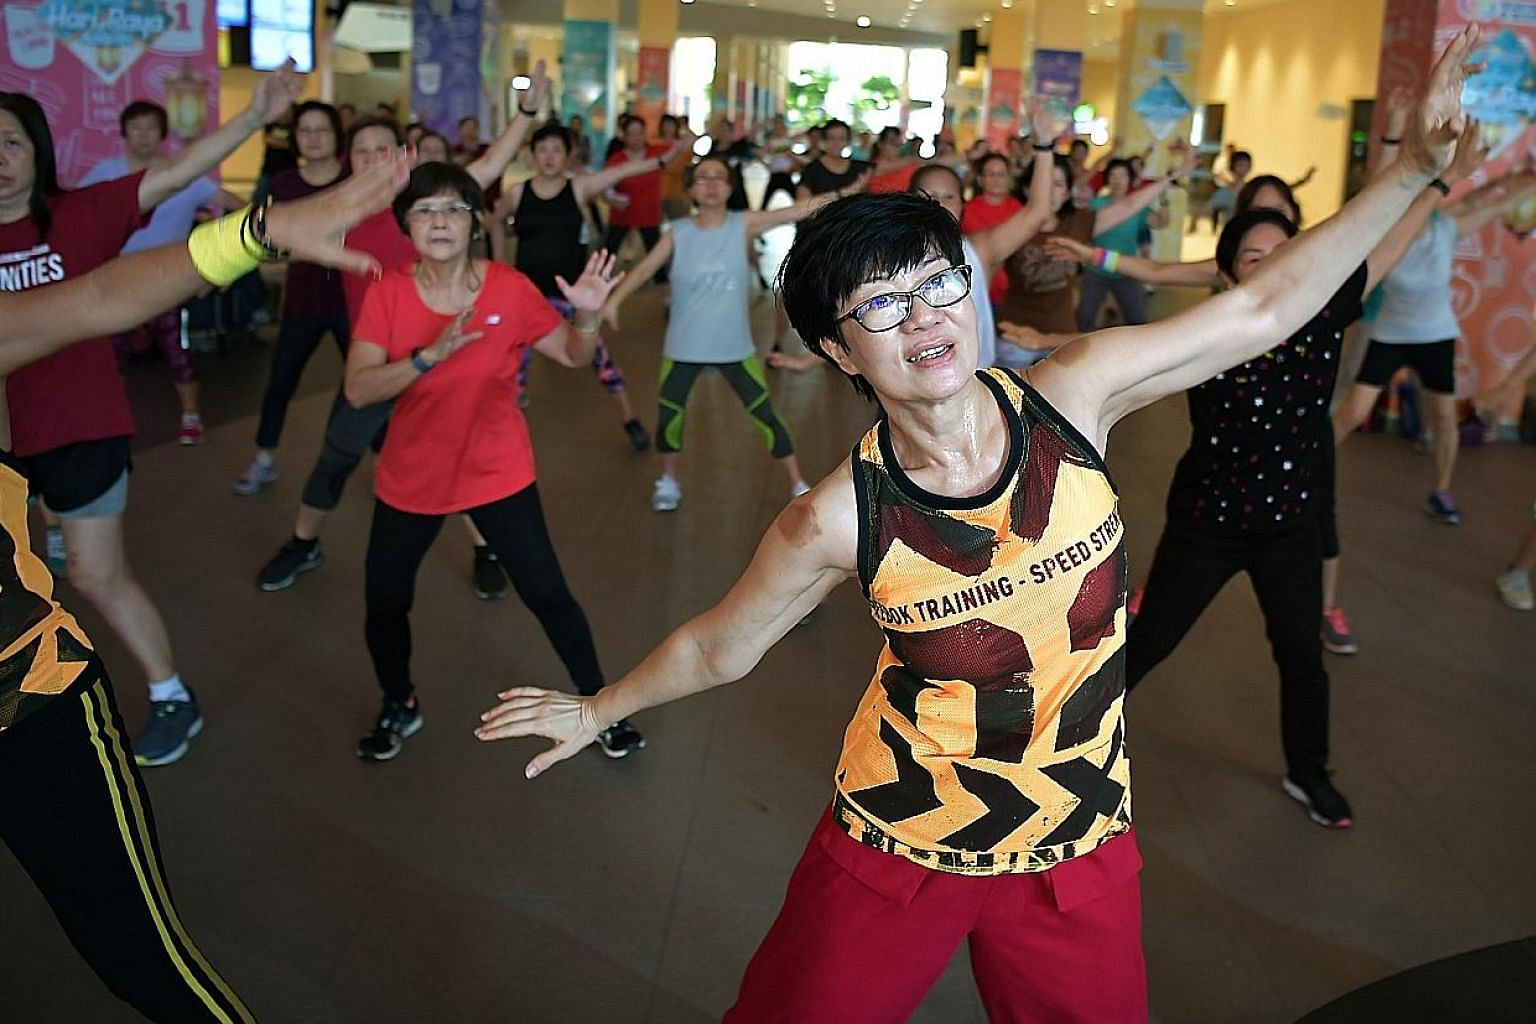 Ms Linda Loh joined exercise classes to combat loneliness when her grown-up children moved out of the family home. Today, she works out with a group of exercise enthusiasts who call themselves Bedok Sweeties.